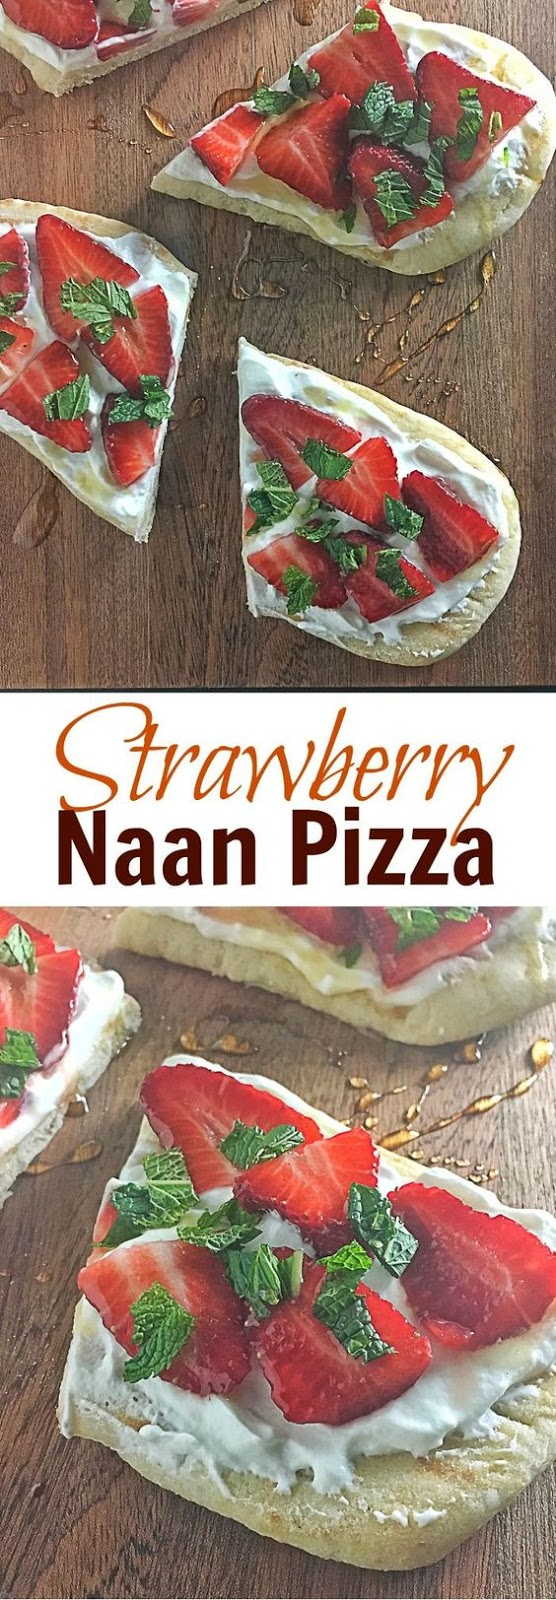 Strawberry Naan Pizza